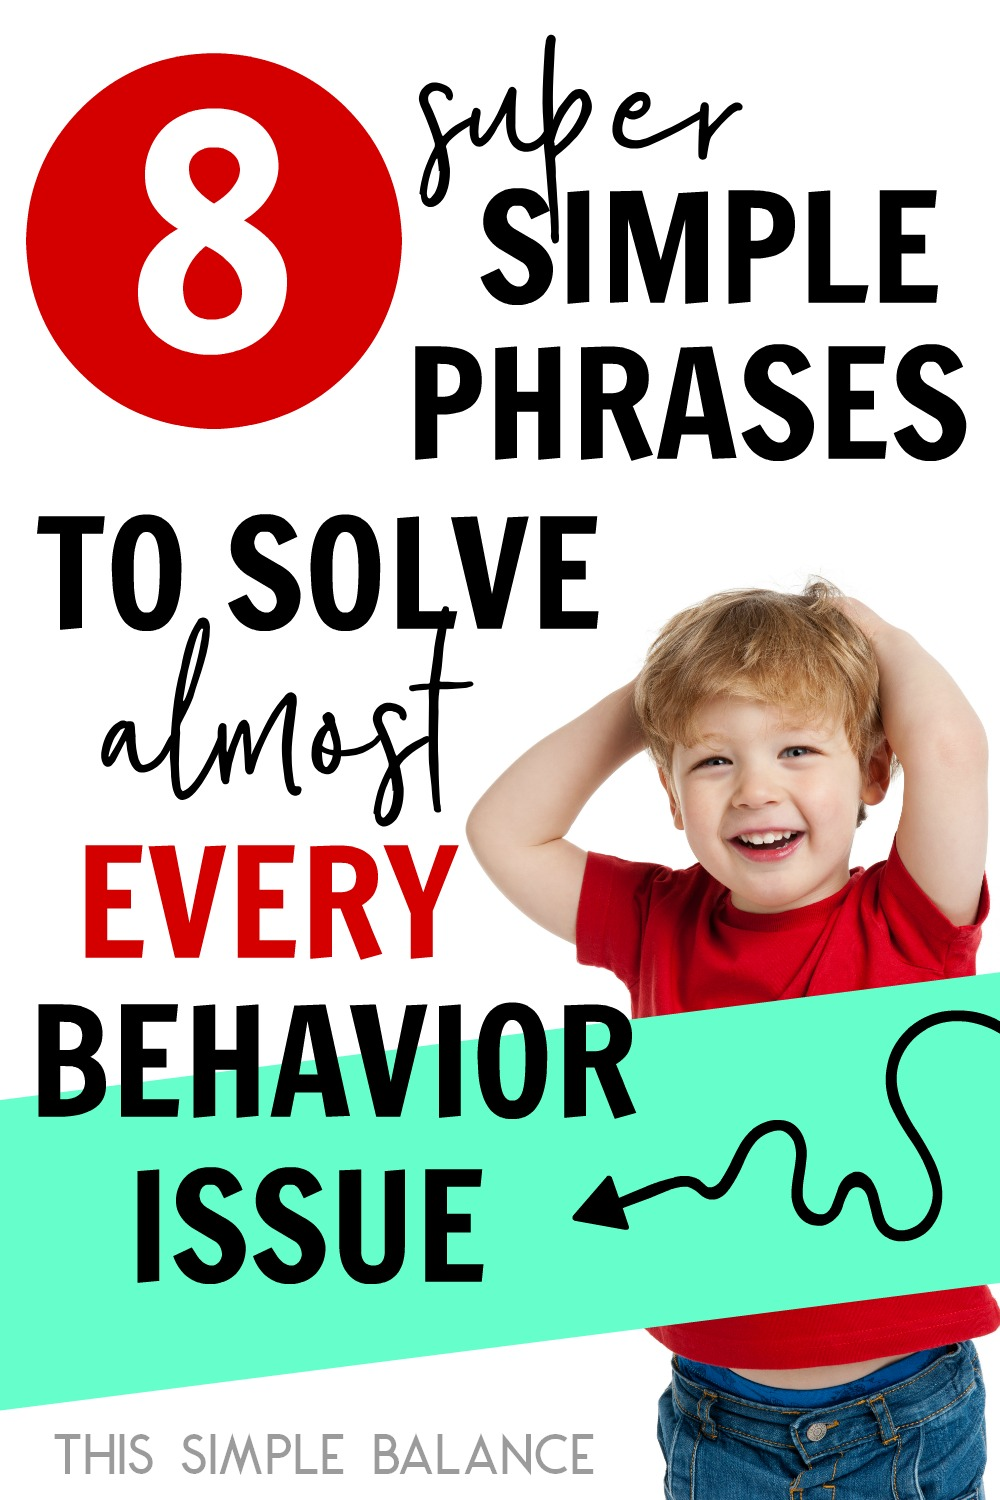 Discipline for Little Kids doesn't need to drive you crazy! These 8 simple phrases handle almost every unwanted child behavior during the little years.